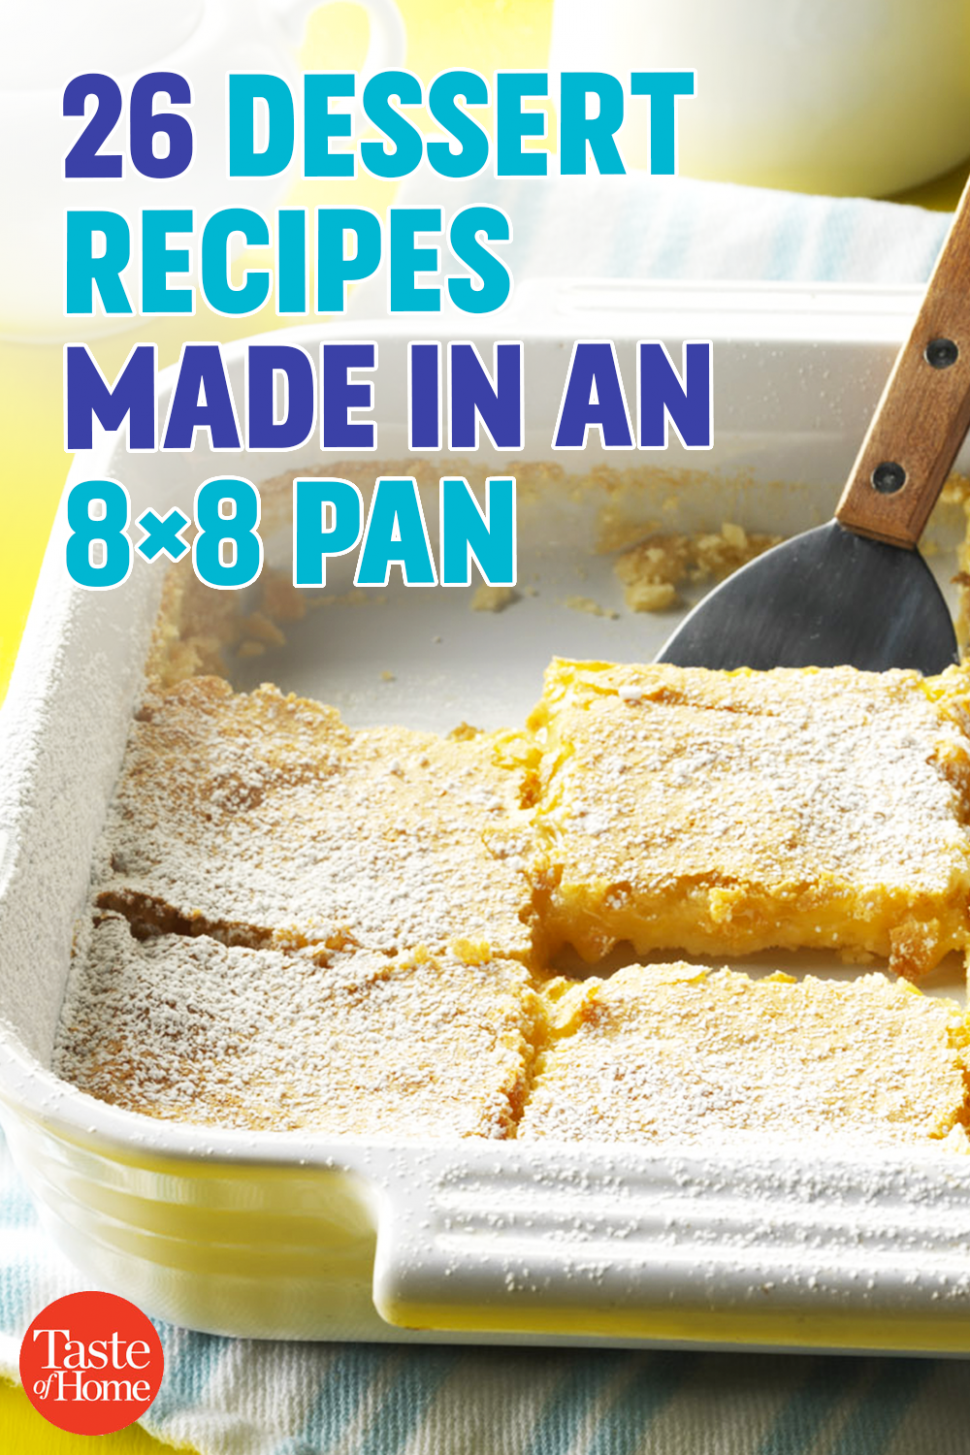 8 Dessert Recipes Made in an 8x8 Pan | Dessert recipes, 8x8 cake ...